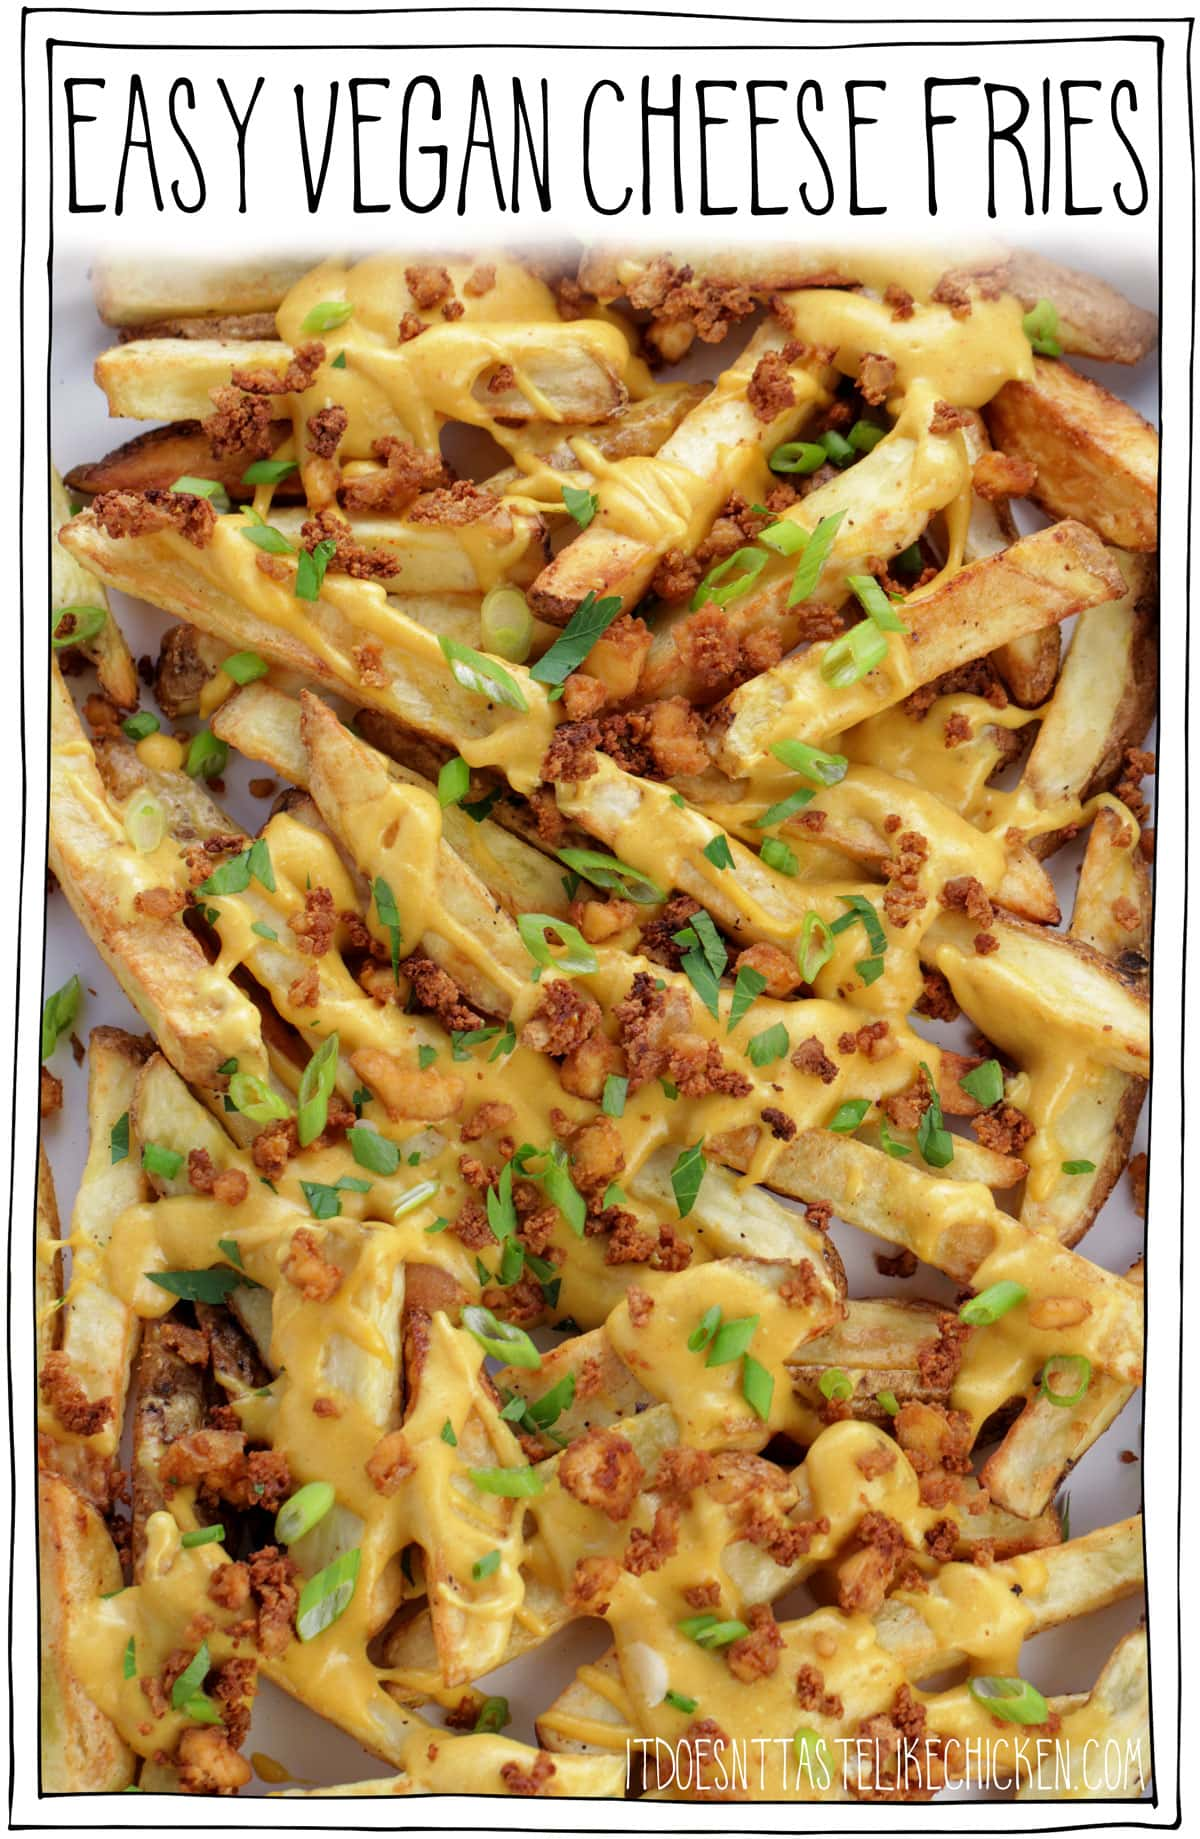 Easy Vegan Cheese Fries! Crispy french fries with homemade stretchy melty vegan nacho cheese, and tofu bacon bits. The perfect comfort food for movie night or game night. Surprisingly healthy and can even be made oil-free! #itdoesnttastelikechicken #veganrecipes #vegan